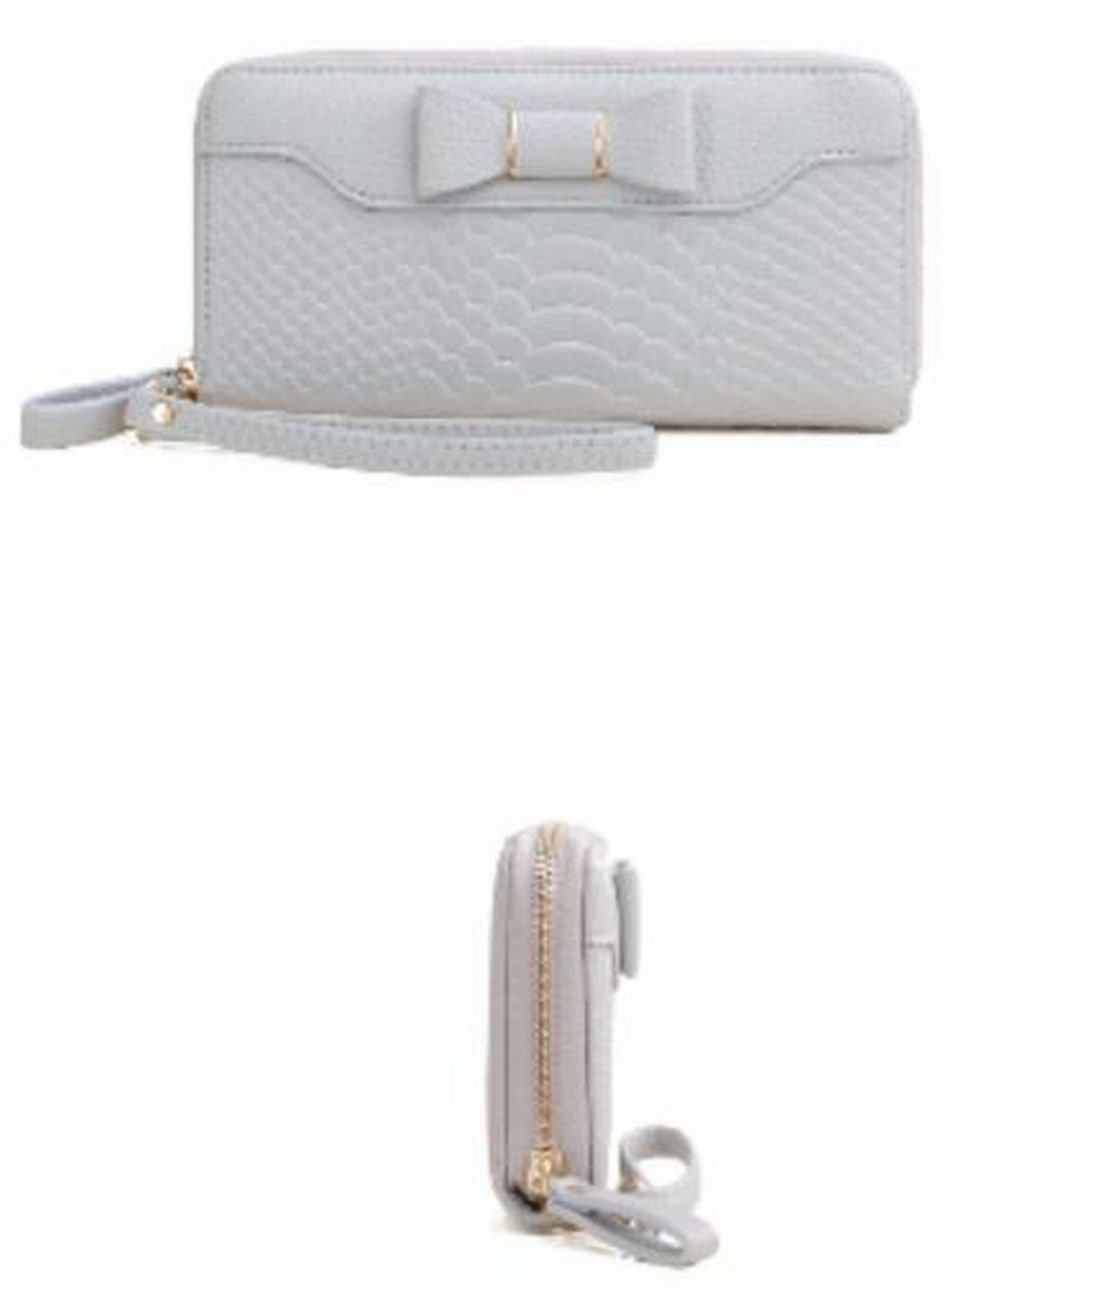 SELECTIA Women's Wallet PU Leather Mother's Day Gift Present Gift Beautiful Adorable Gorgeous Gift Large Capaciity Long Purse Credit Cash Holder Clutch Handbag with Strap Iconic Bow 29 (White) by SELECTIA (Image #3)